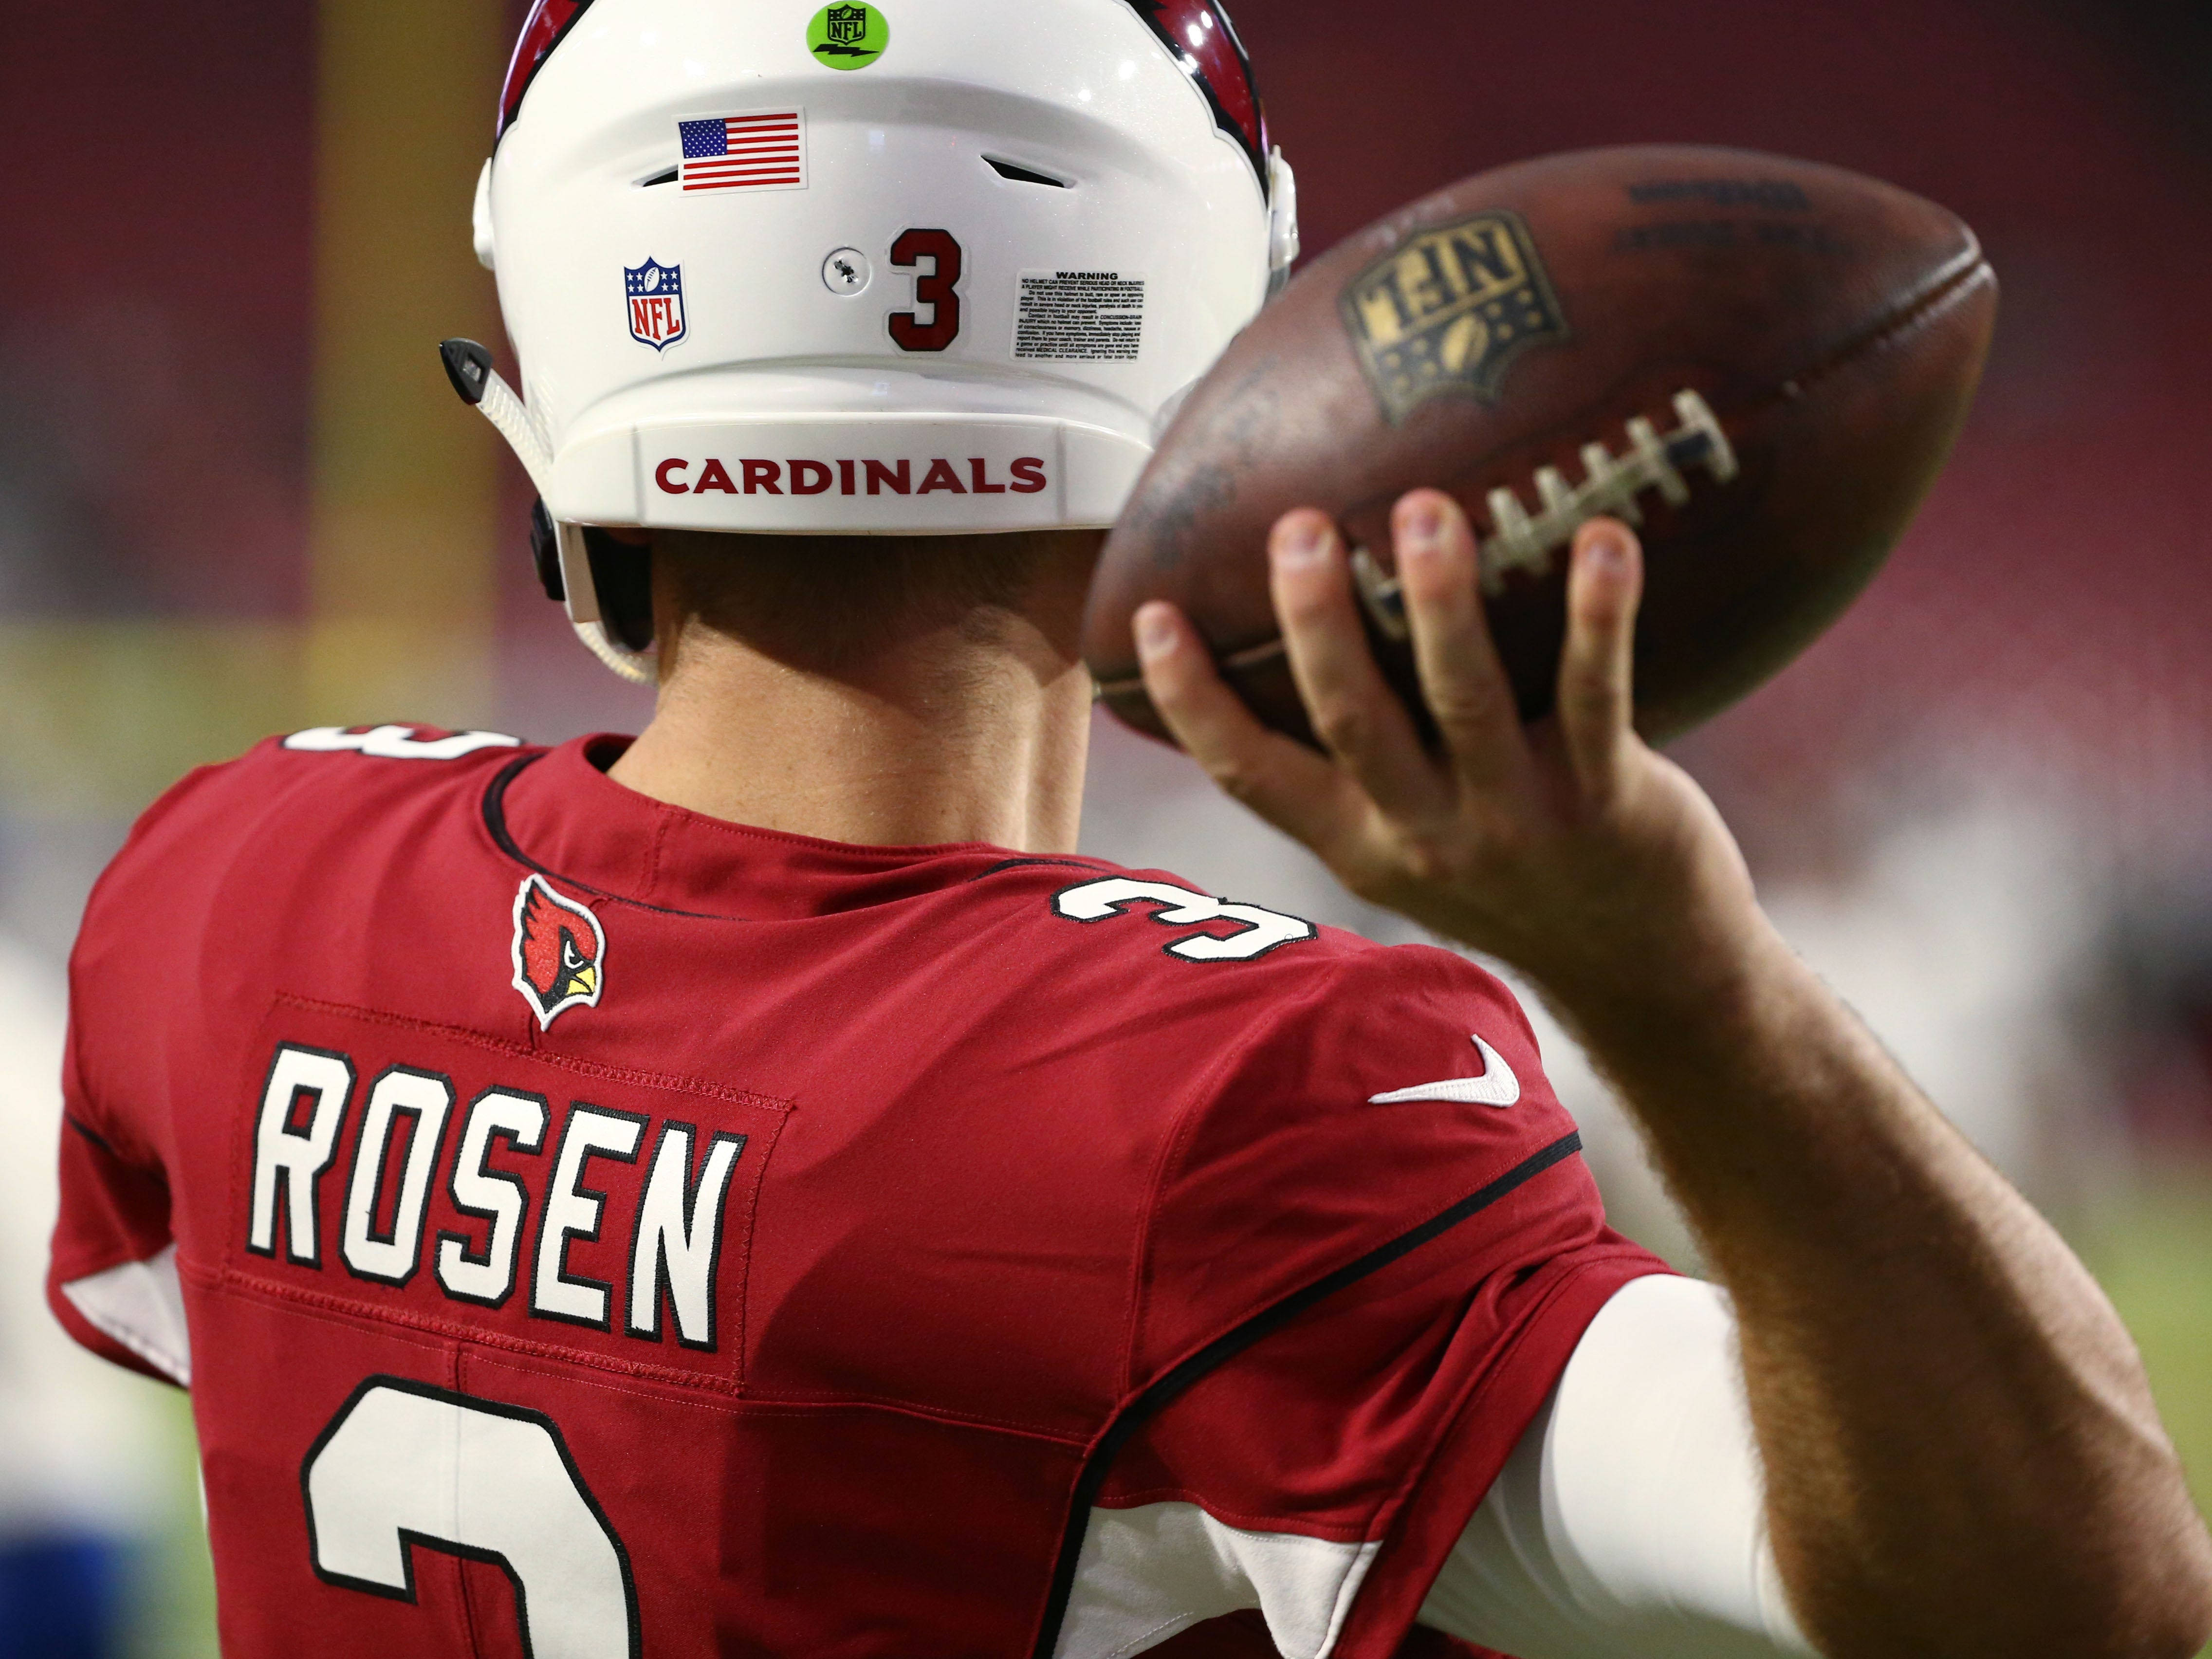 Arizona Cardinals quarterback Josh Rosen warms-up before playing the L.A. Chargers during a preseason NFL football game on Aug. 11, 2018 at University of Phoenix Stadium in Glendale, Ariz.